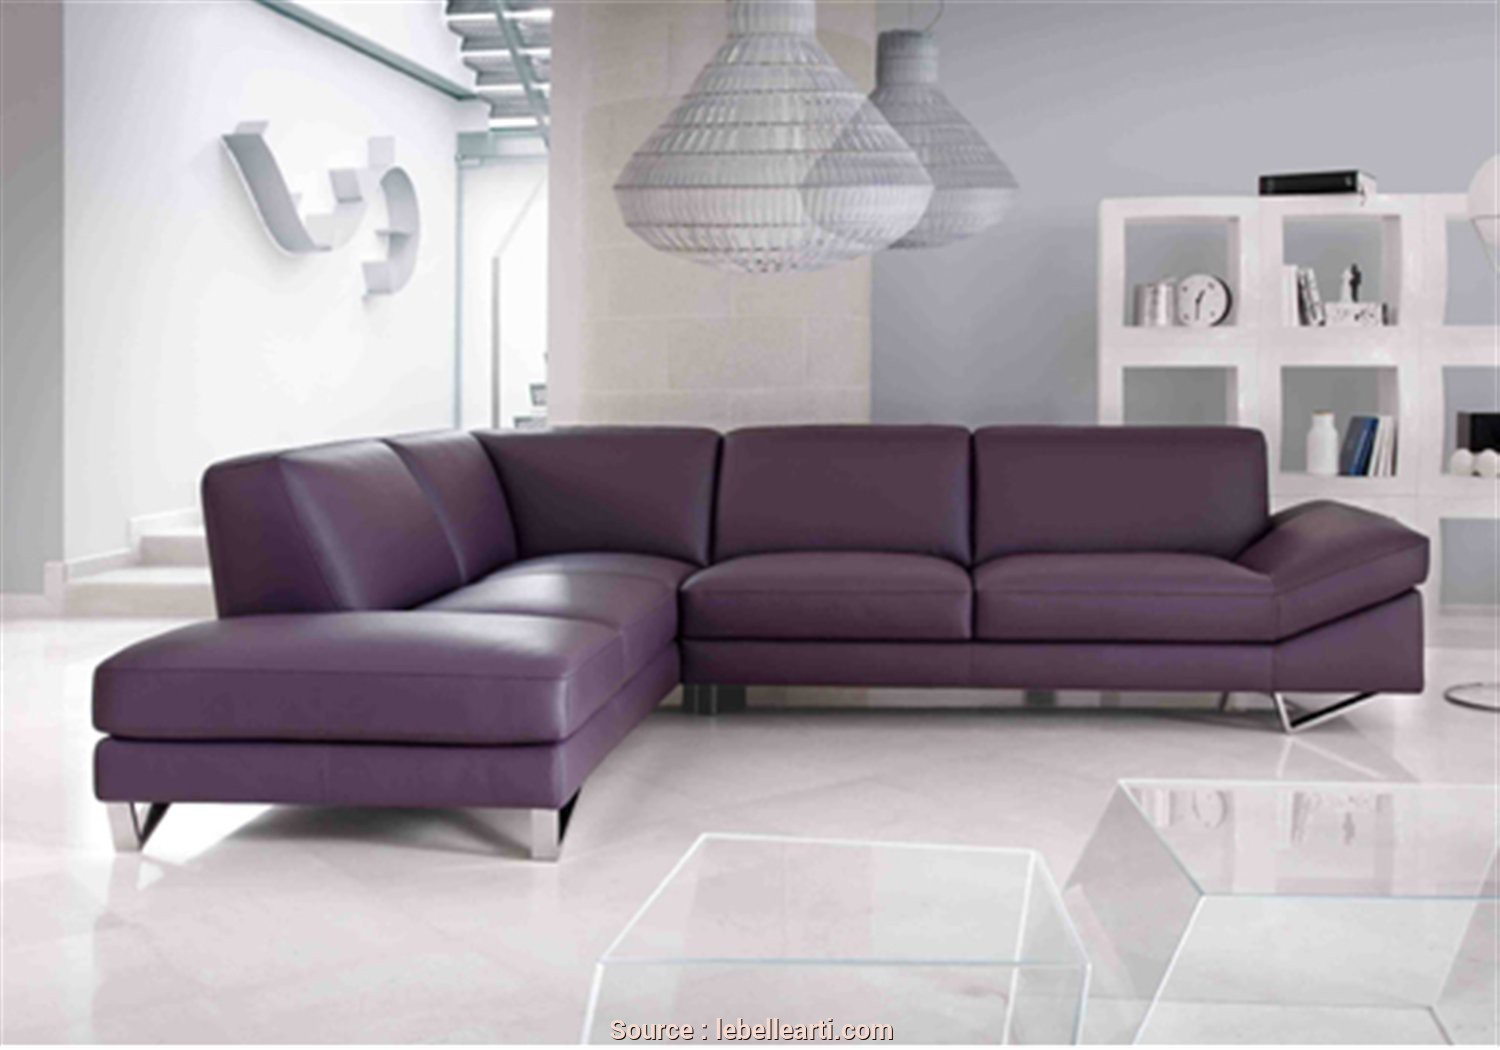 Esotico 5 Hip, Sofa Calia Italia